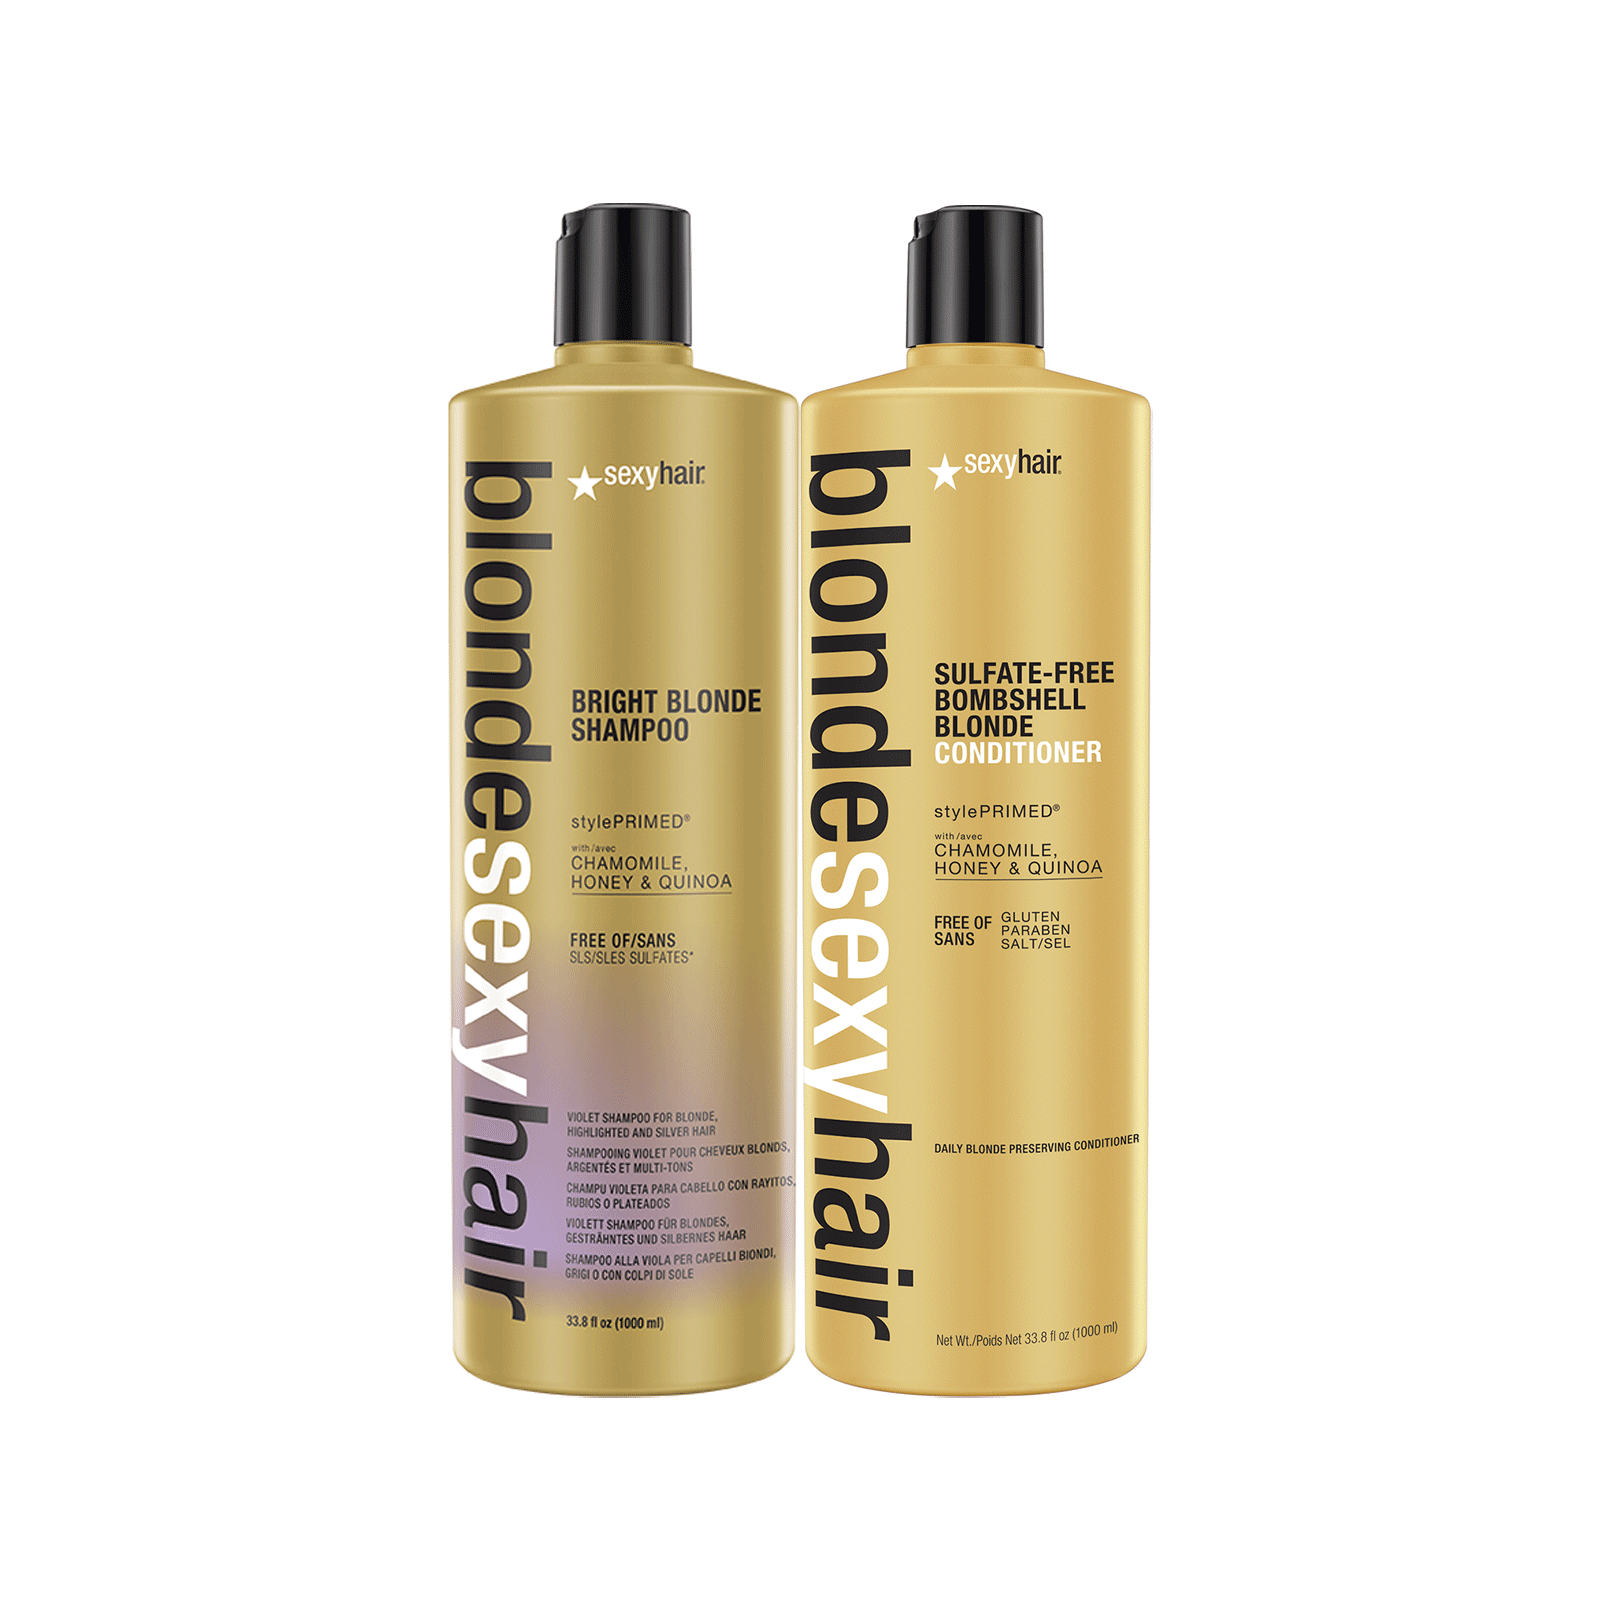 Bombshell Blonde Conditioner, Bright Blonde Shampoo Liters